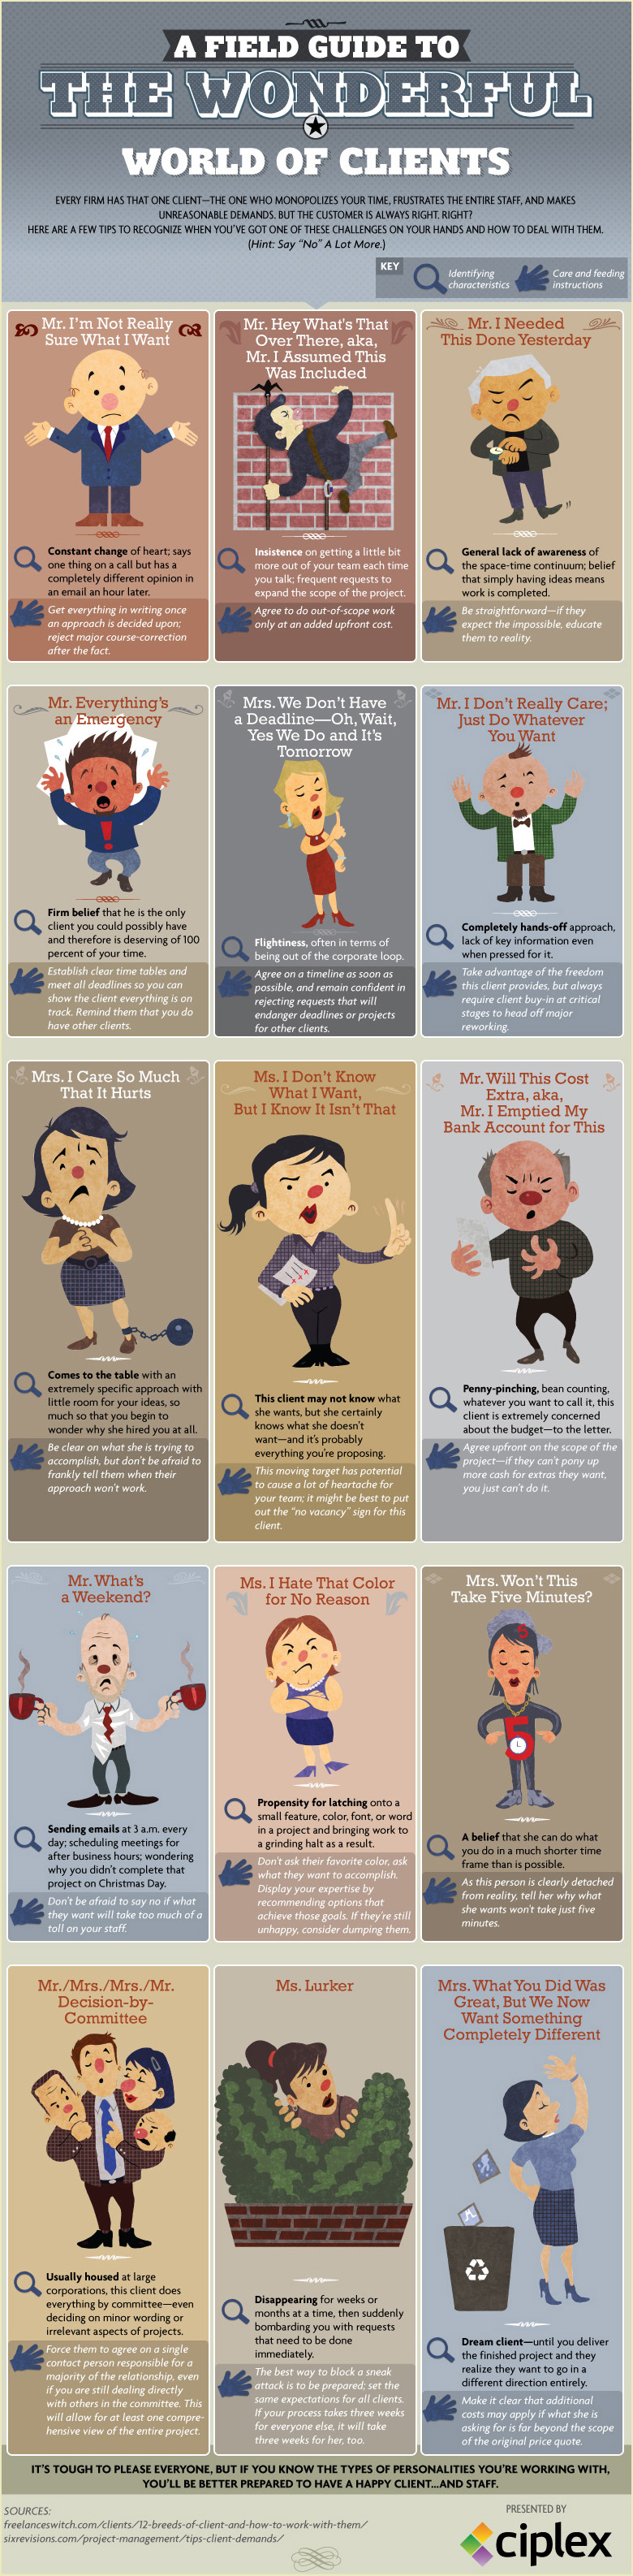 Top 15 Ways To Deal With Difficult Clients